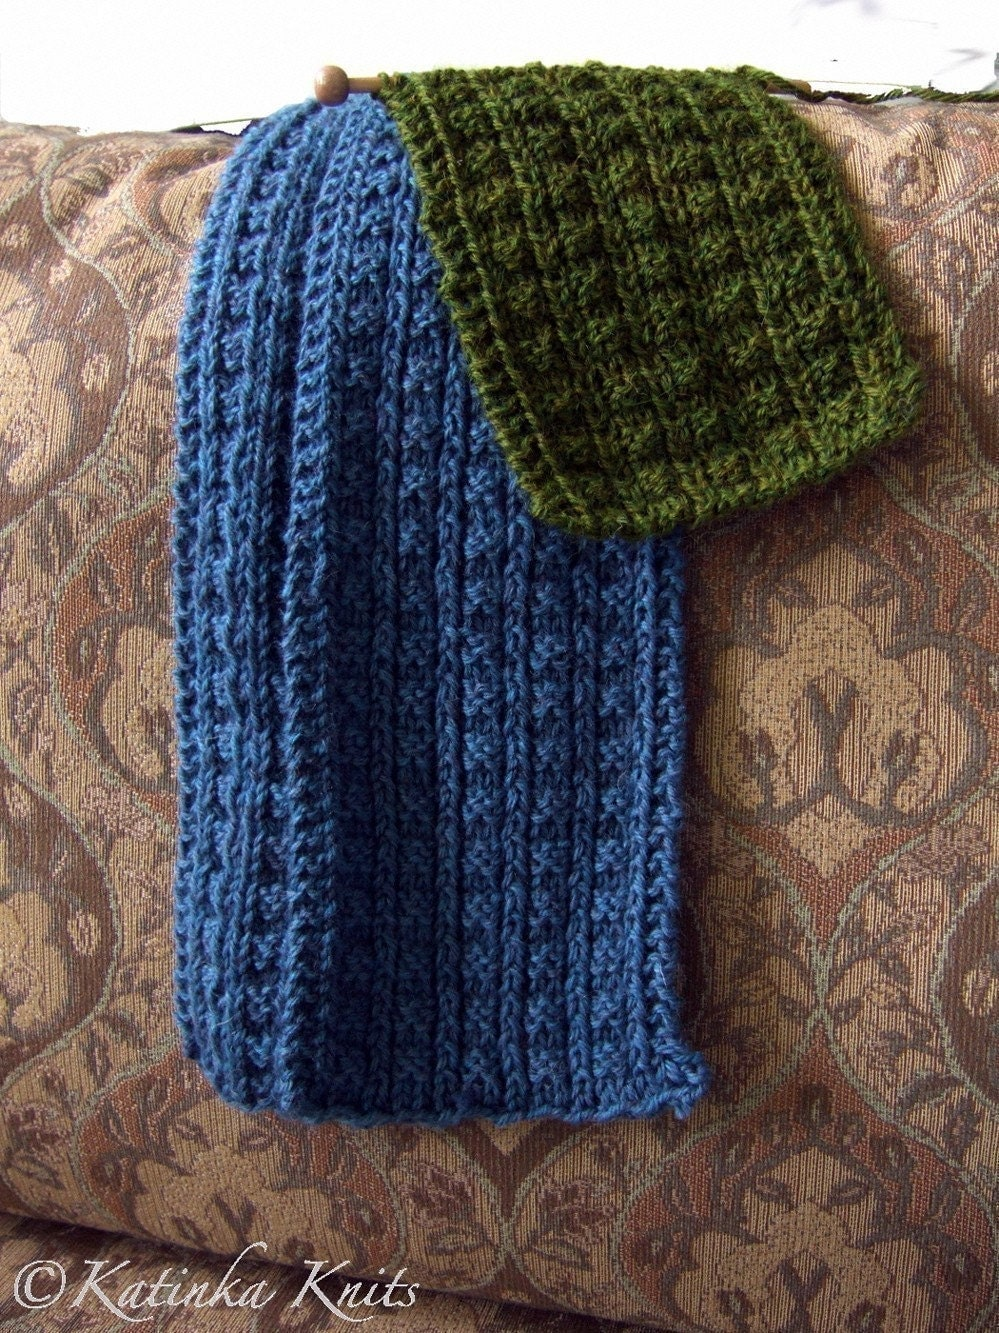 Knitting Rib Stitch Scarf : Items similar to Sailors Rib Scarf Knitting Pattern on Etsy